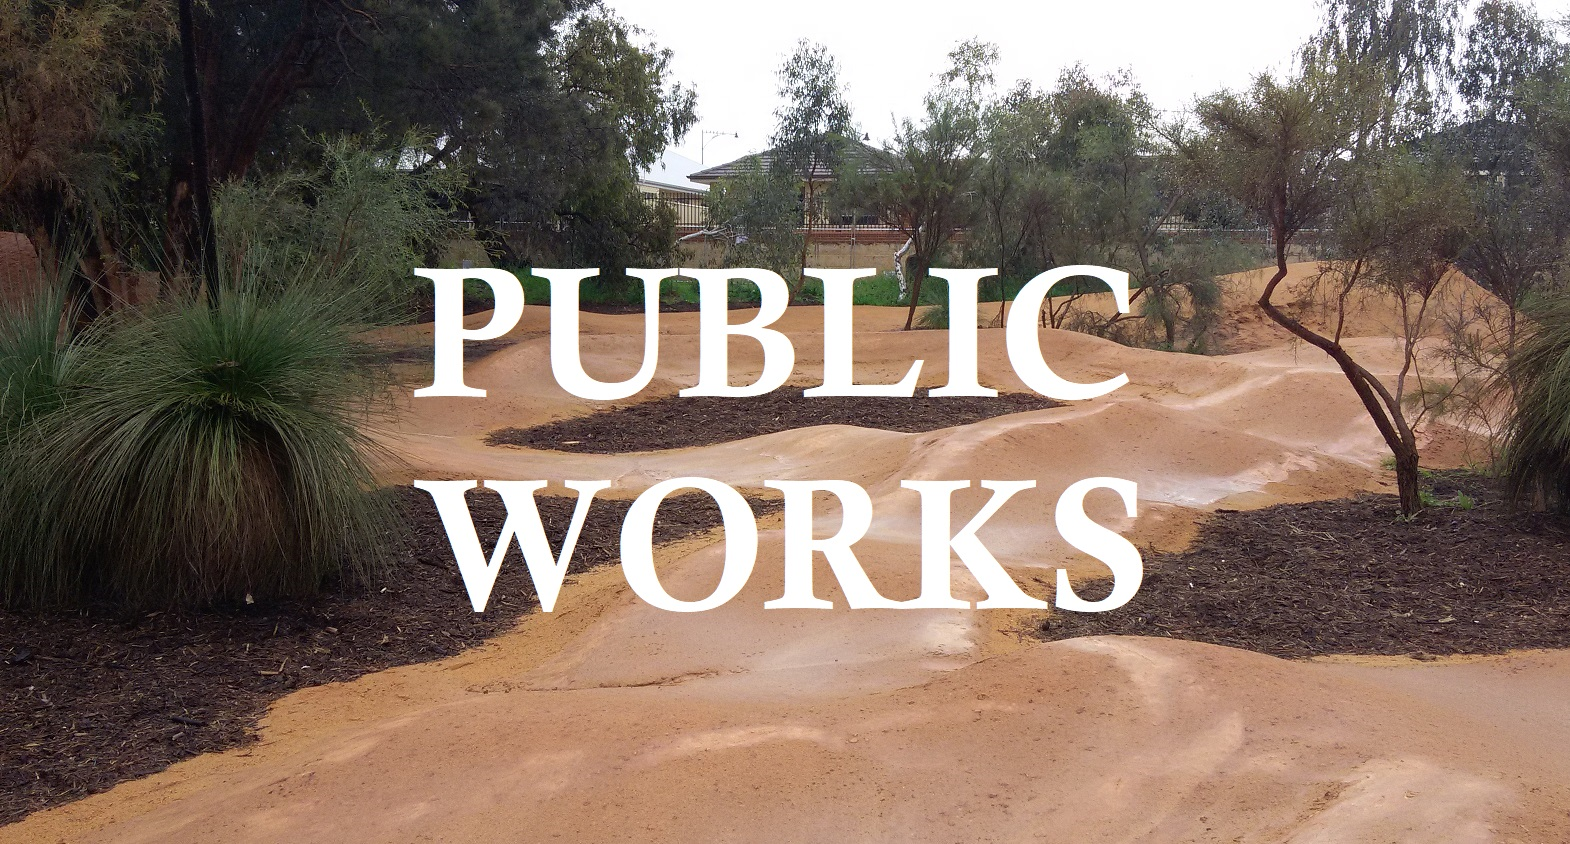 http://verdanteng.com.au/category/public-works/